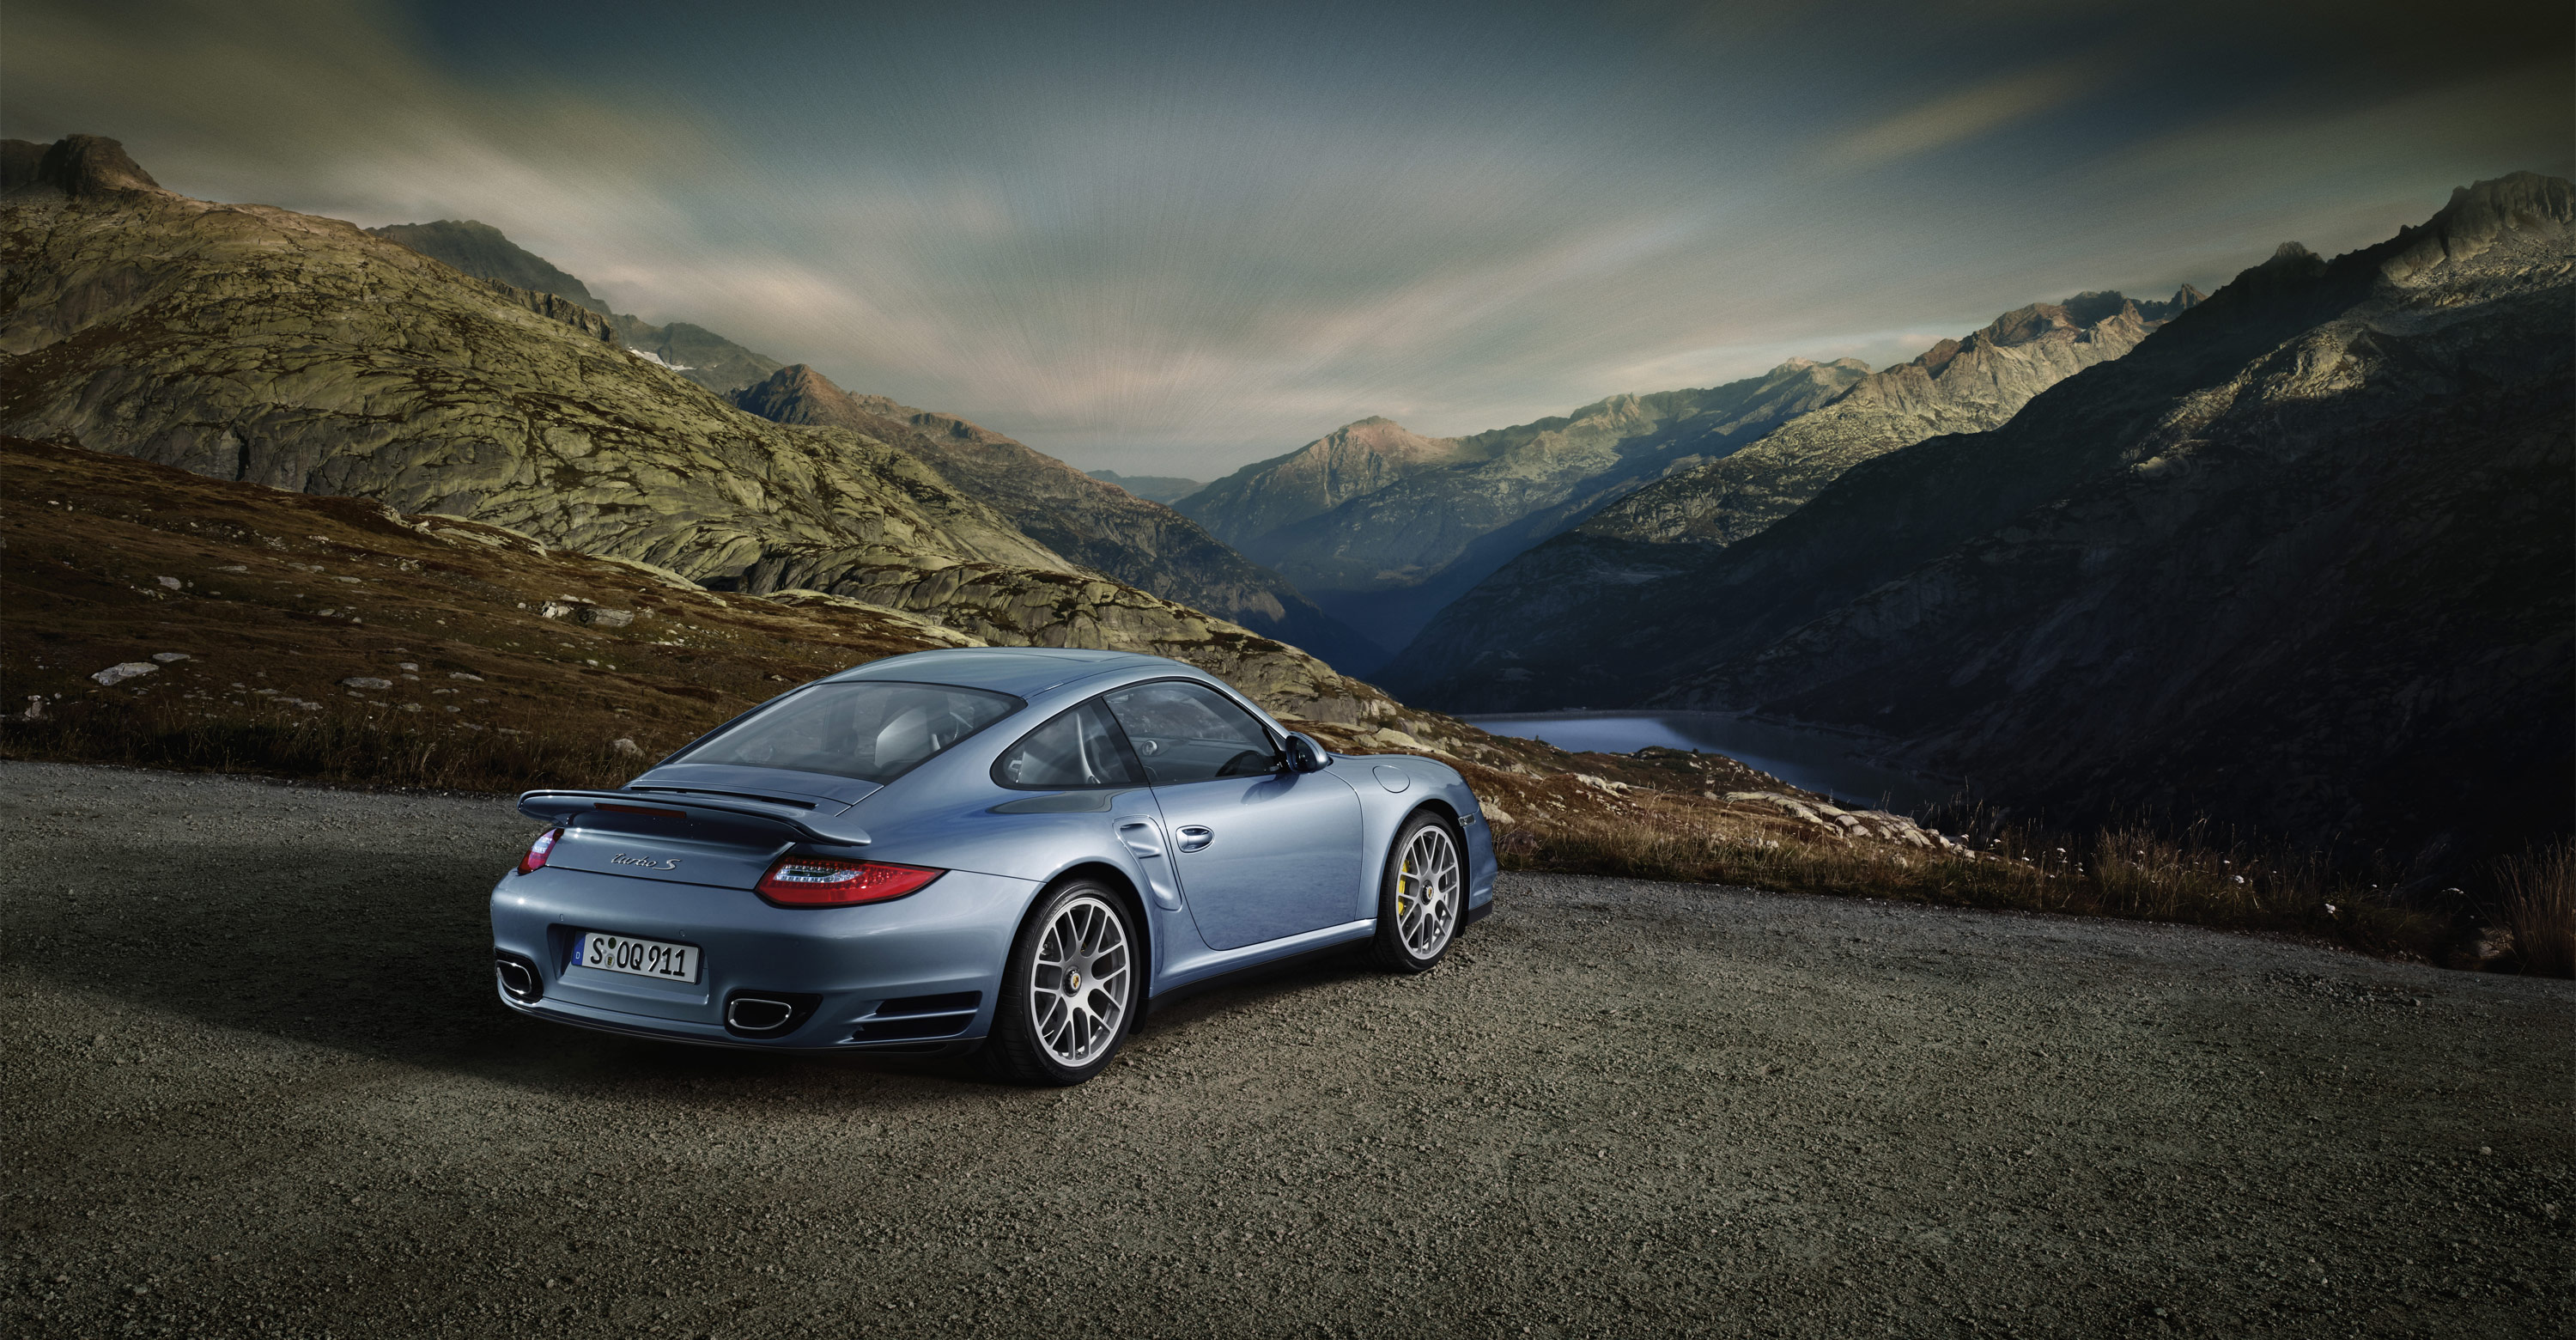 Porsche 911 Turbo Wallpaper 12   3000 X 1560 stmednet 3000x1560